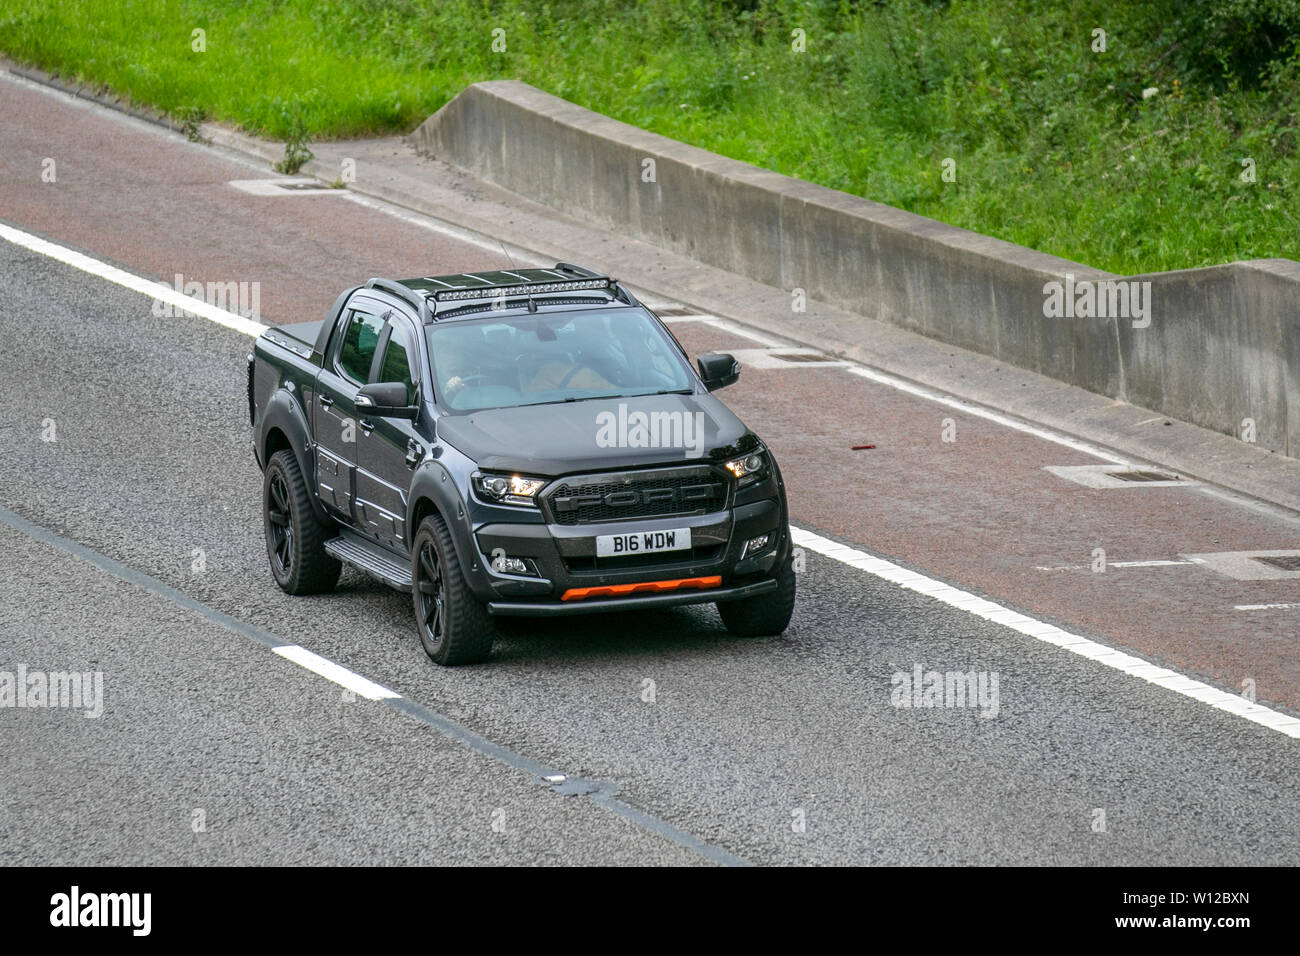 2018 black Ford Ranger Wildtrak 4X4 TDCI; M6, Lancaster, UK; Vehicular traffic, transport, modern, saloon cars, north-bound on the 3 lane highway. - Stock Image